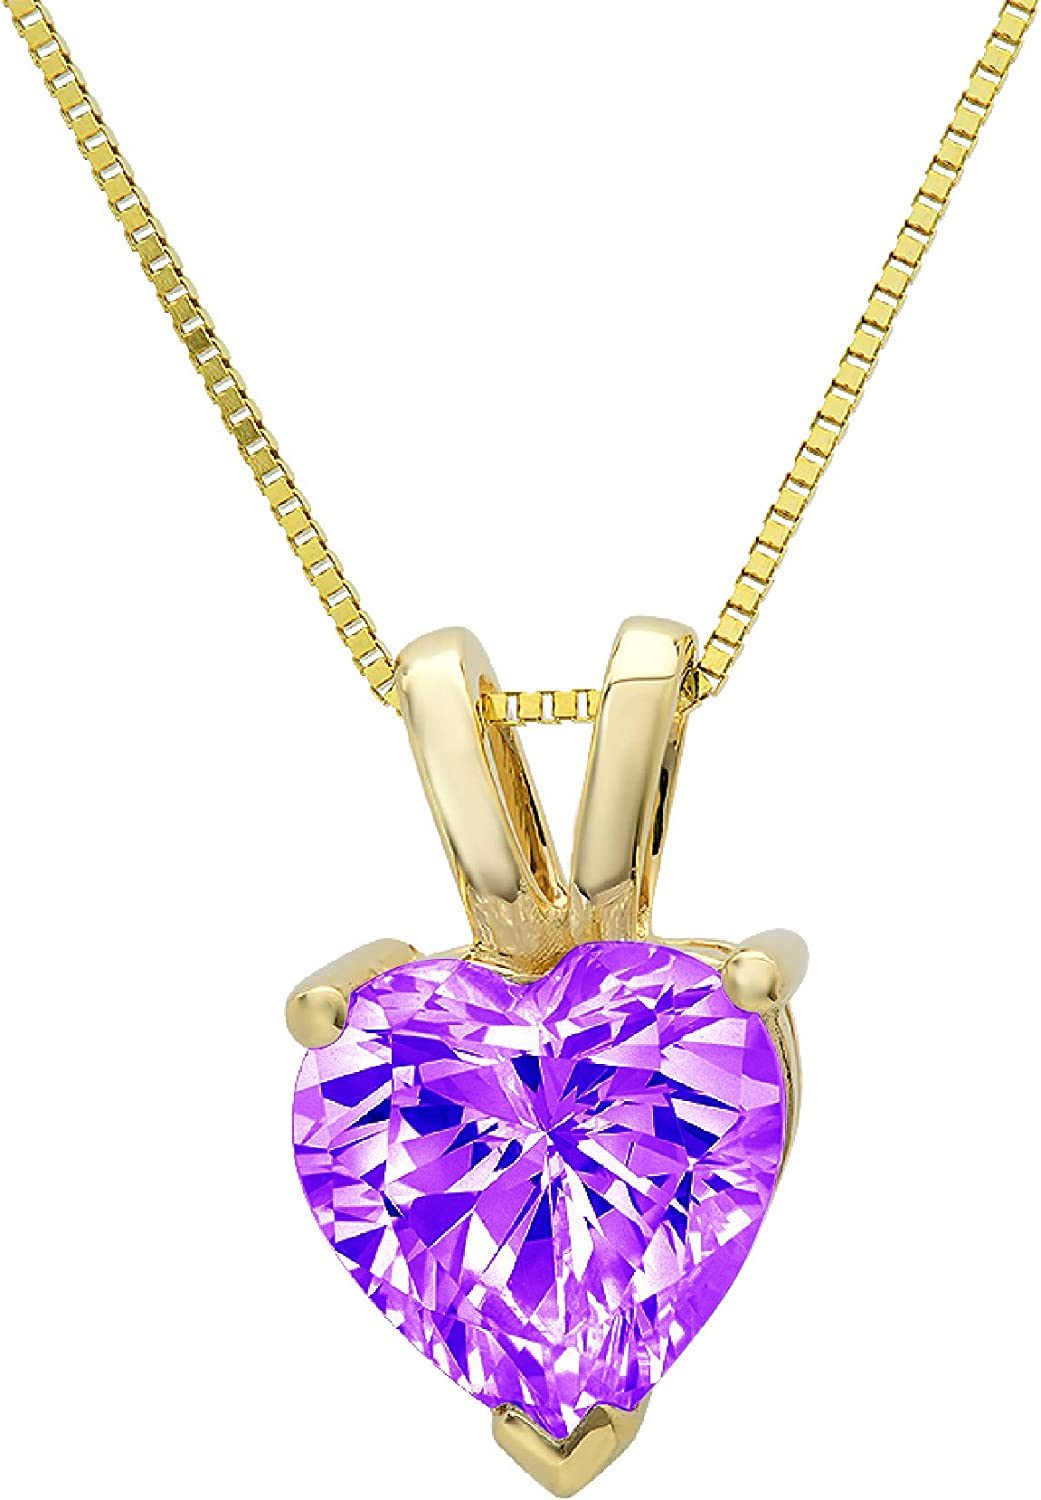 0.5 ct Brilliant Heart Cut Solitaire Designer Genuine Flawless VVS1 Pink Simulated Diamond 14K 18K Yellow Gold Pendant with 18 Chain